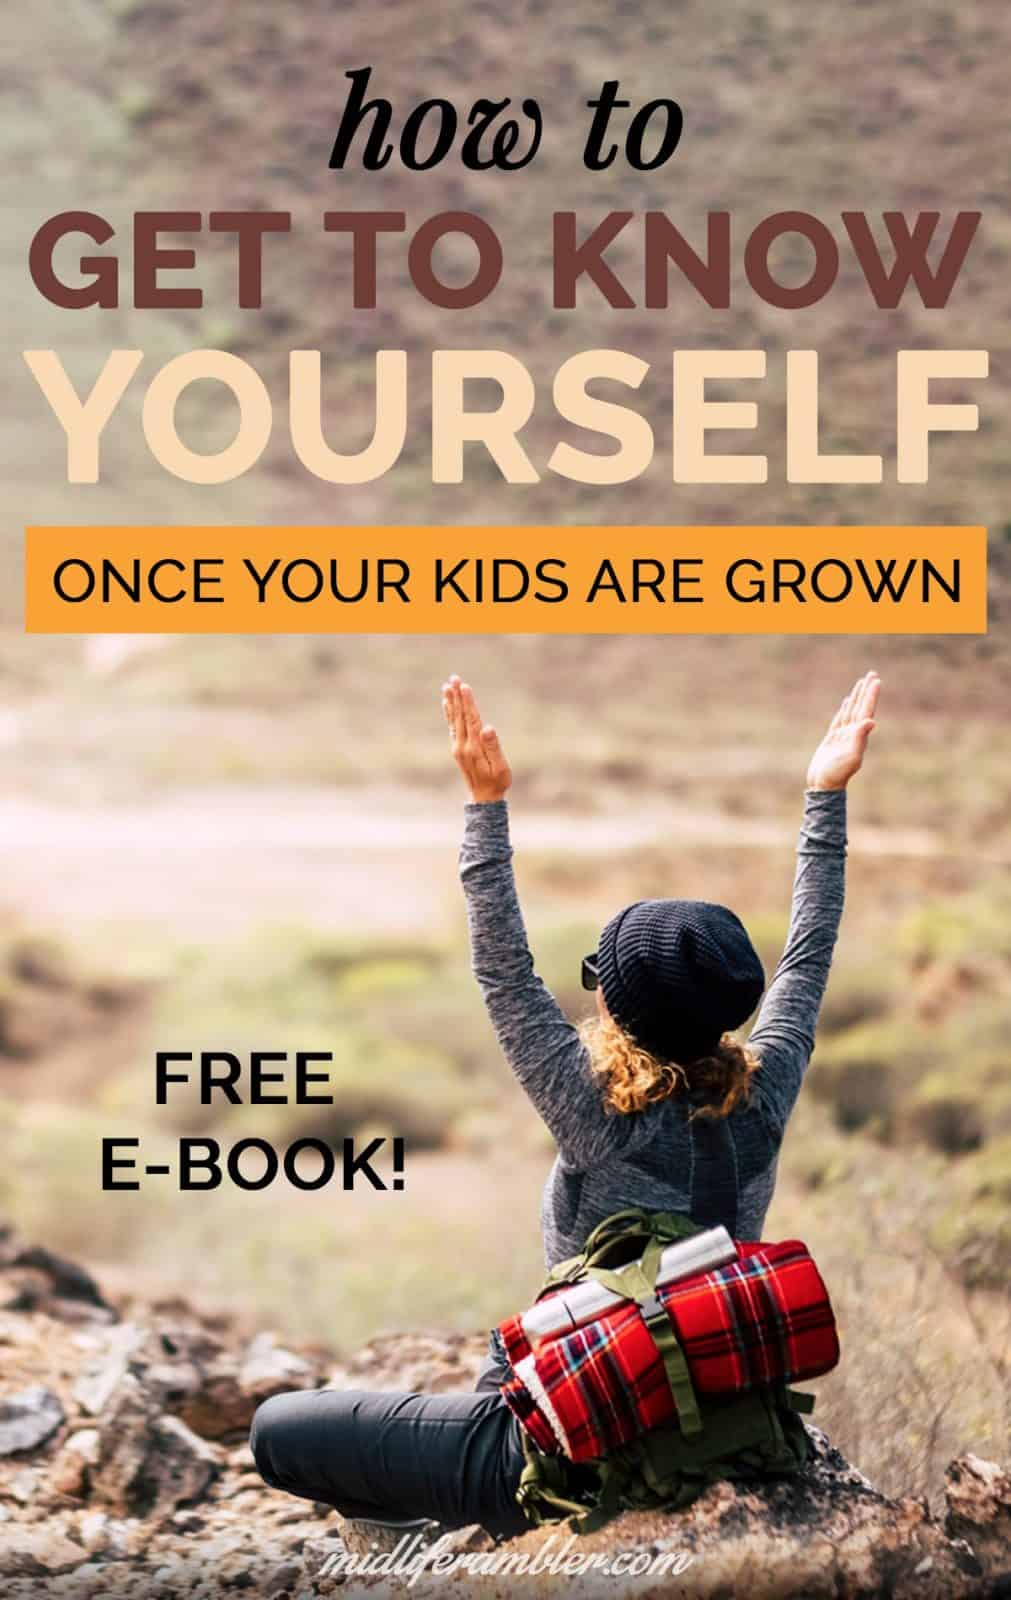 How to Get to Know Yourself Again Once the Kids are Grown 4